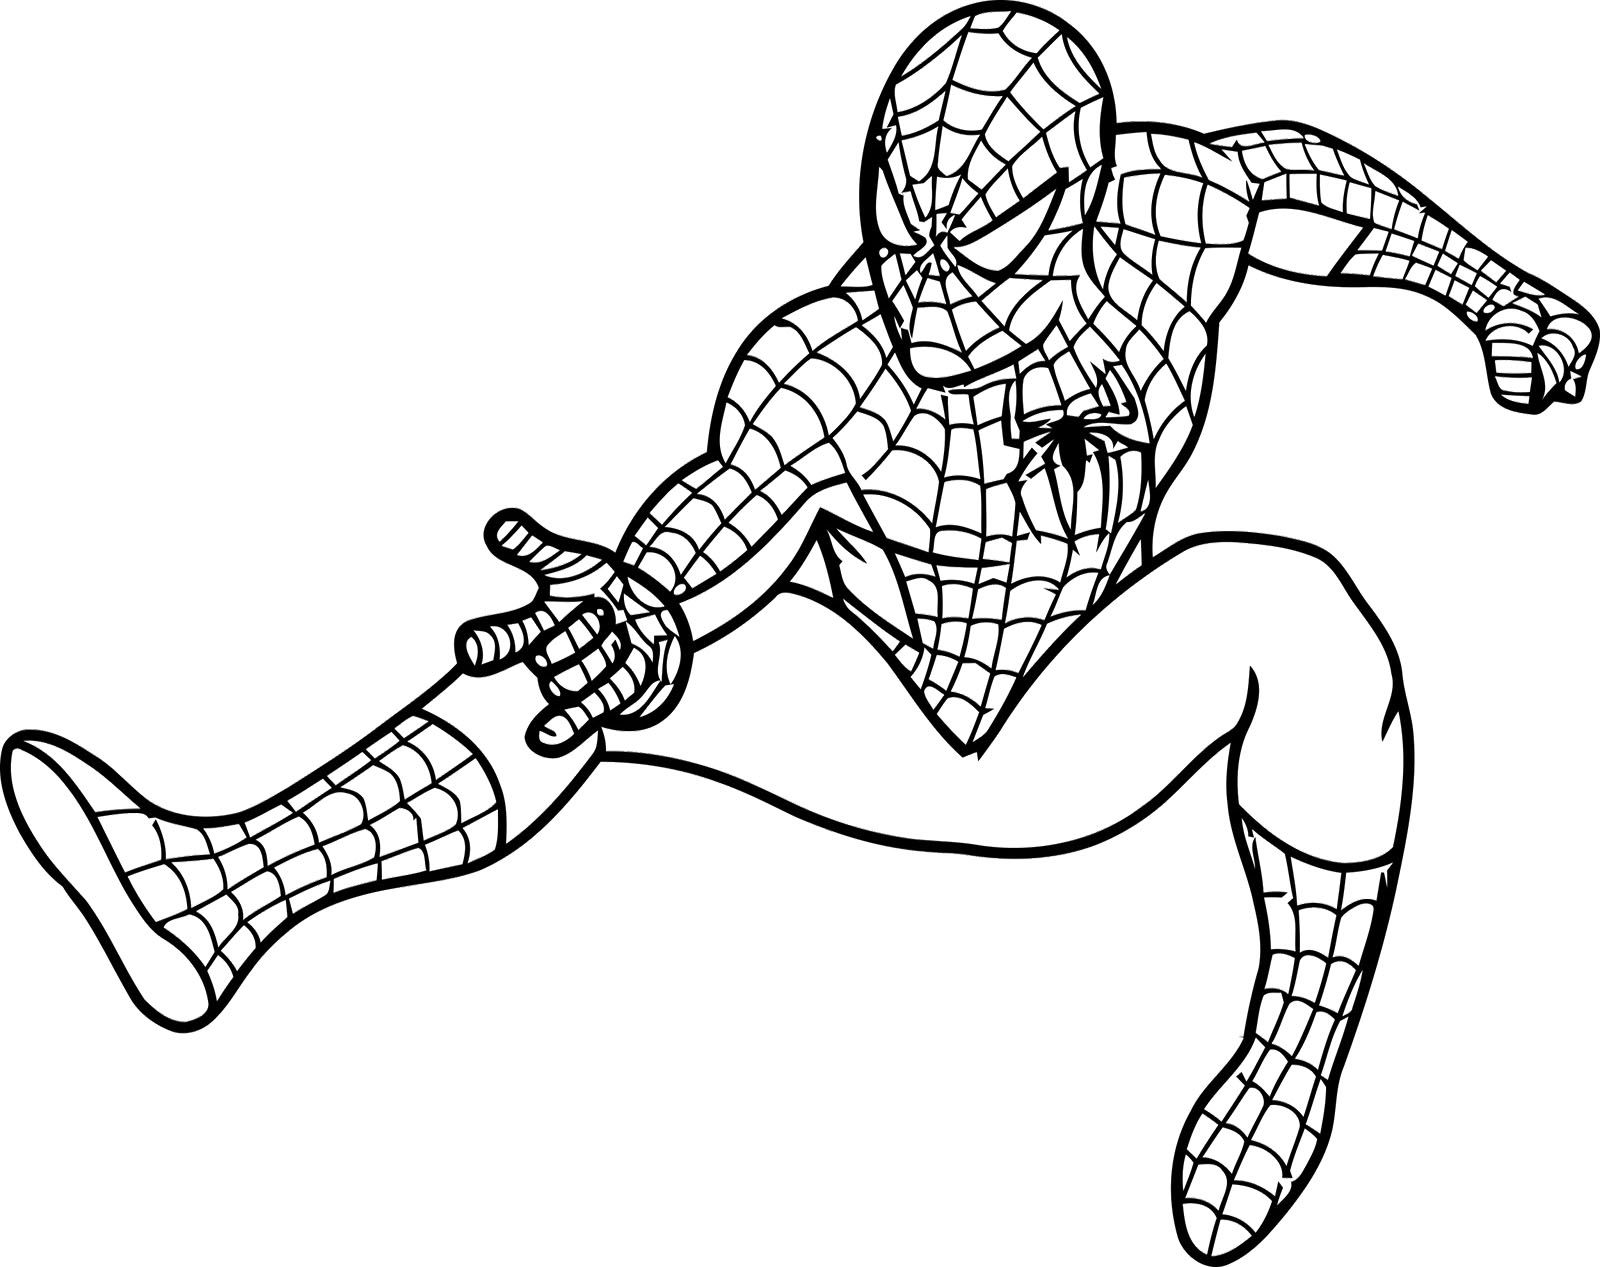 spiderman coloring pages pinterest google yahoo imgur